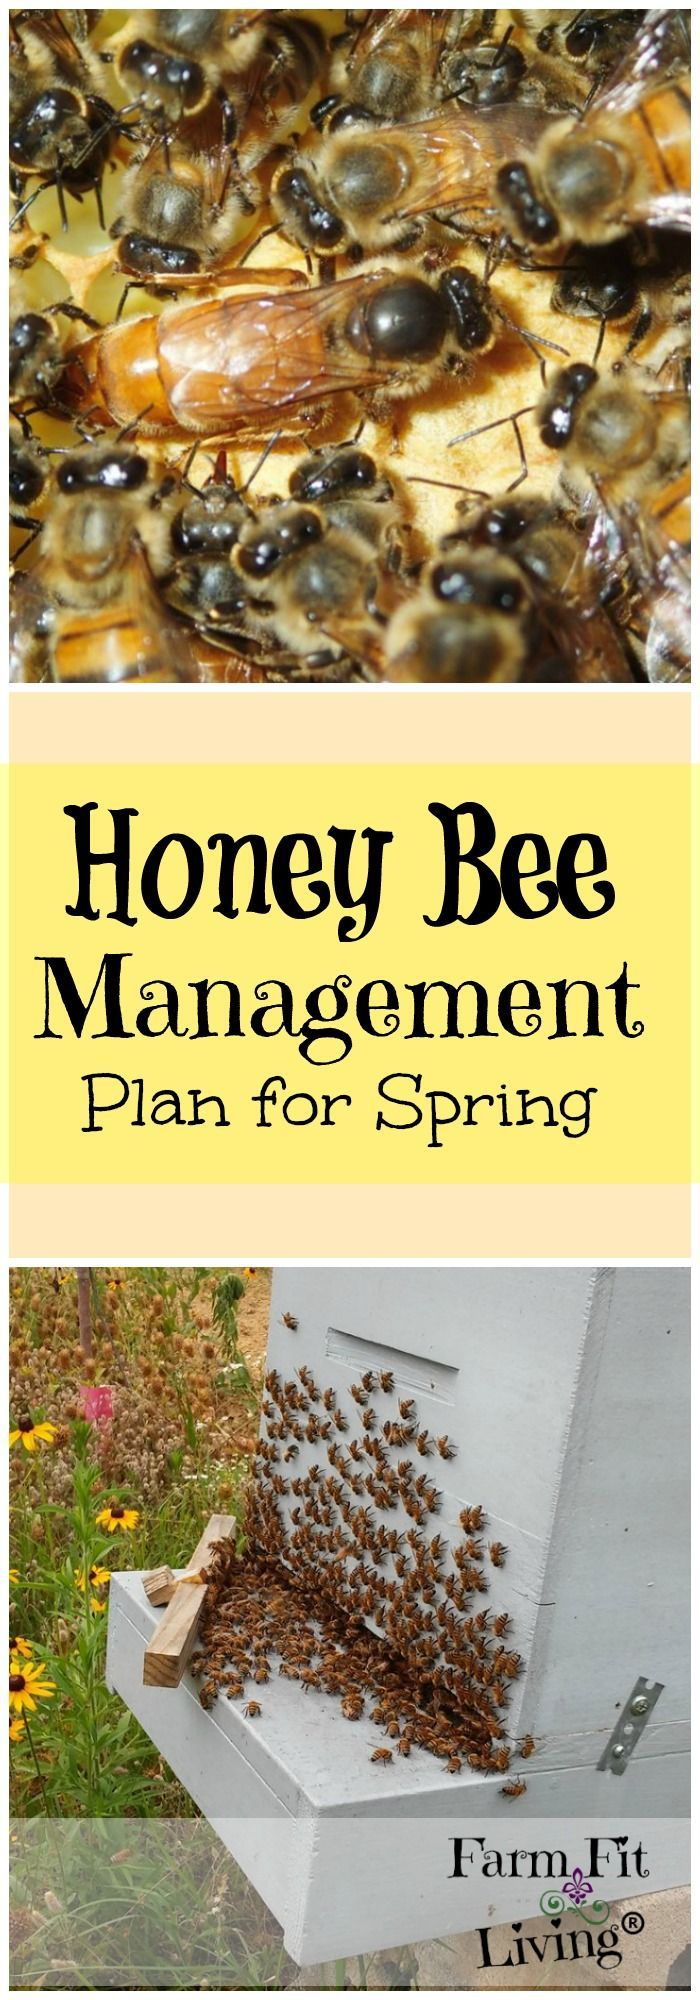 a business plan for bee keeping Book keeping for beekeepers:  beekeeping has some  all aspects must be considered in great detail and a marketing plan, cashflow forecast and business plan.